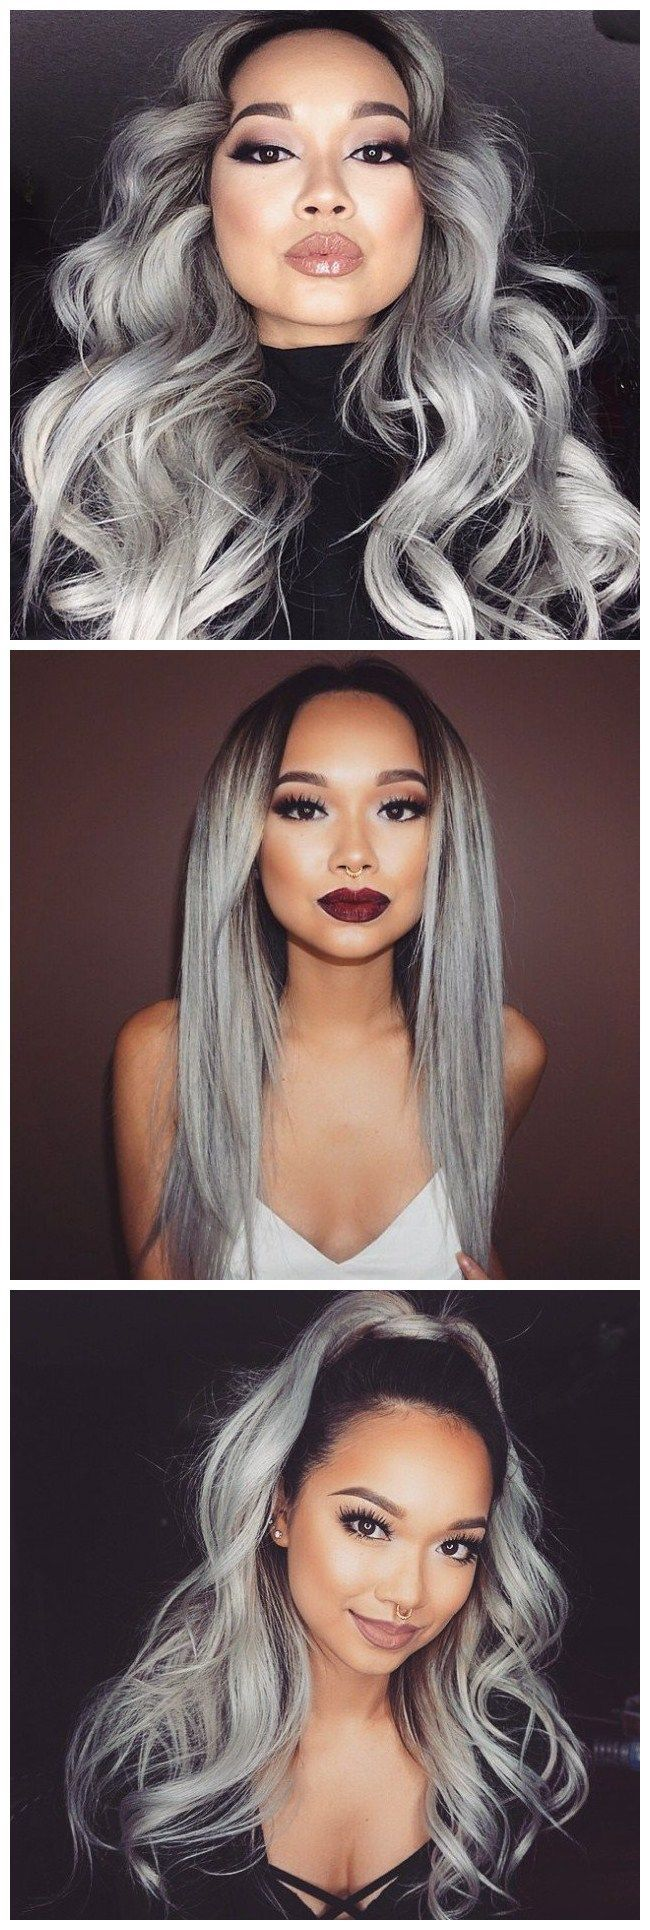 Grey color hair styles high quality hair form divas wig store on